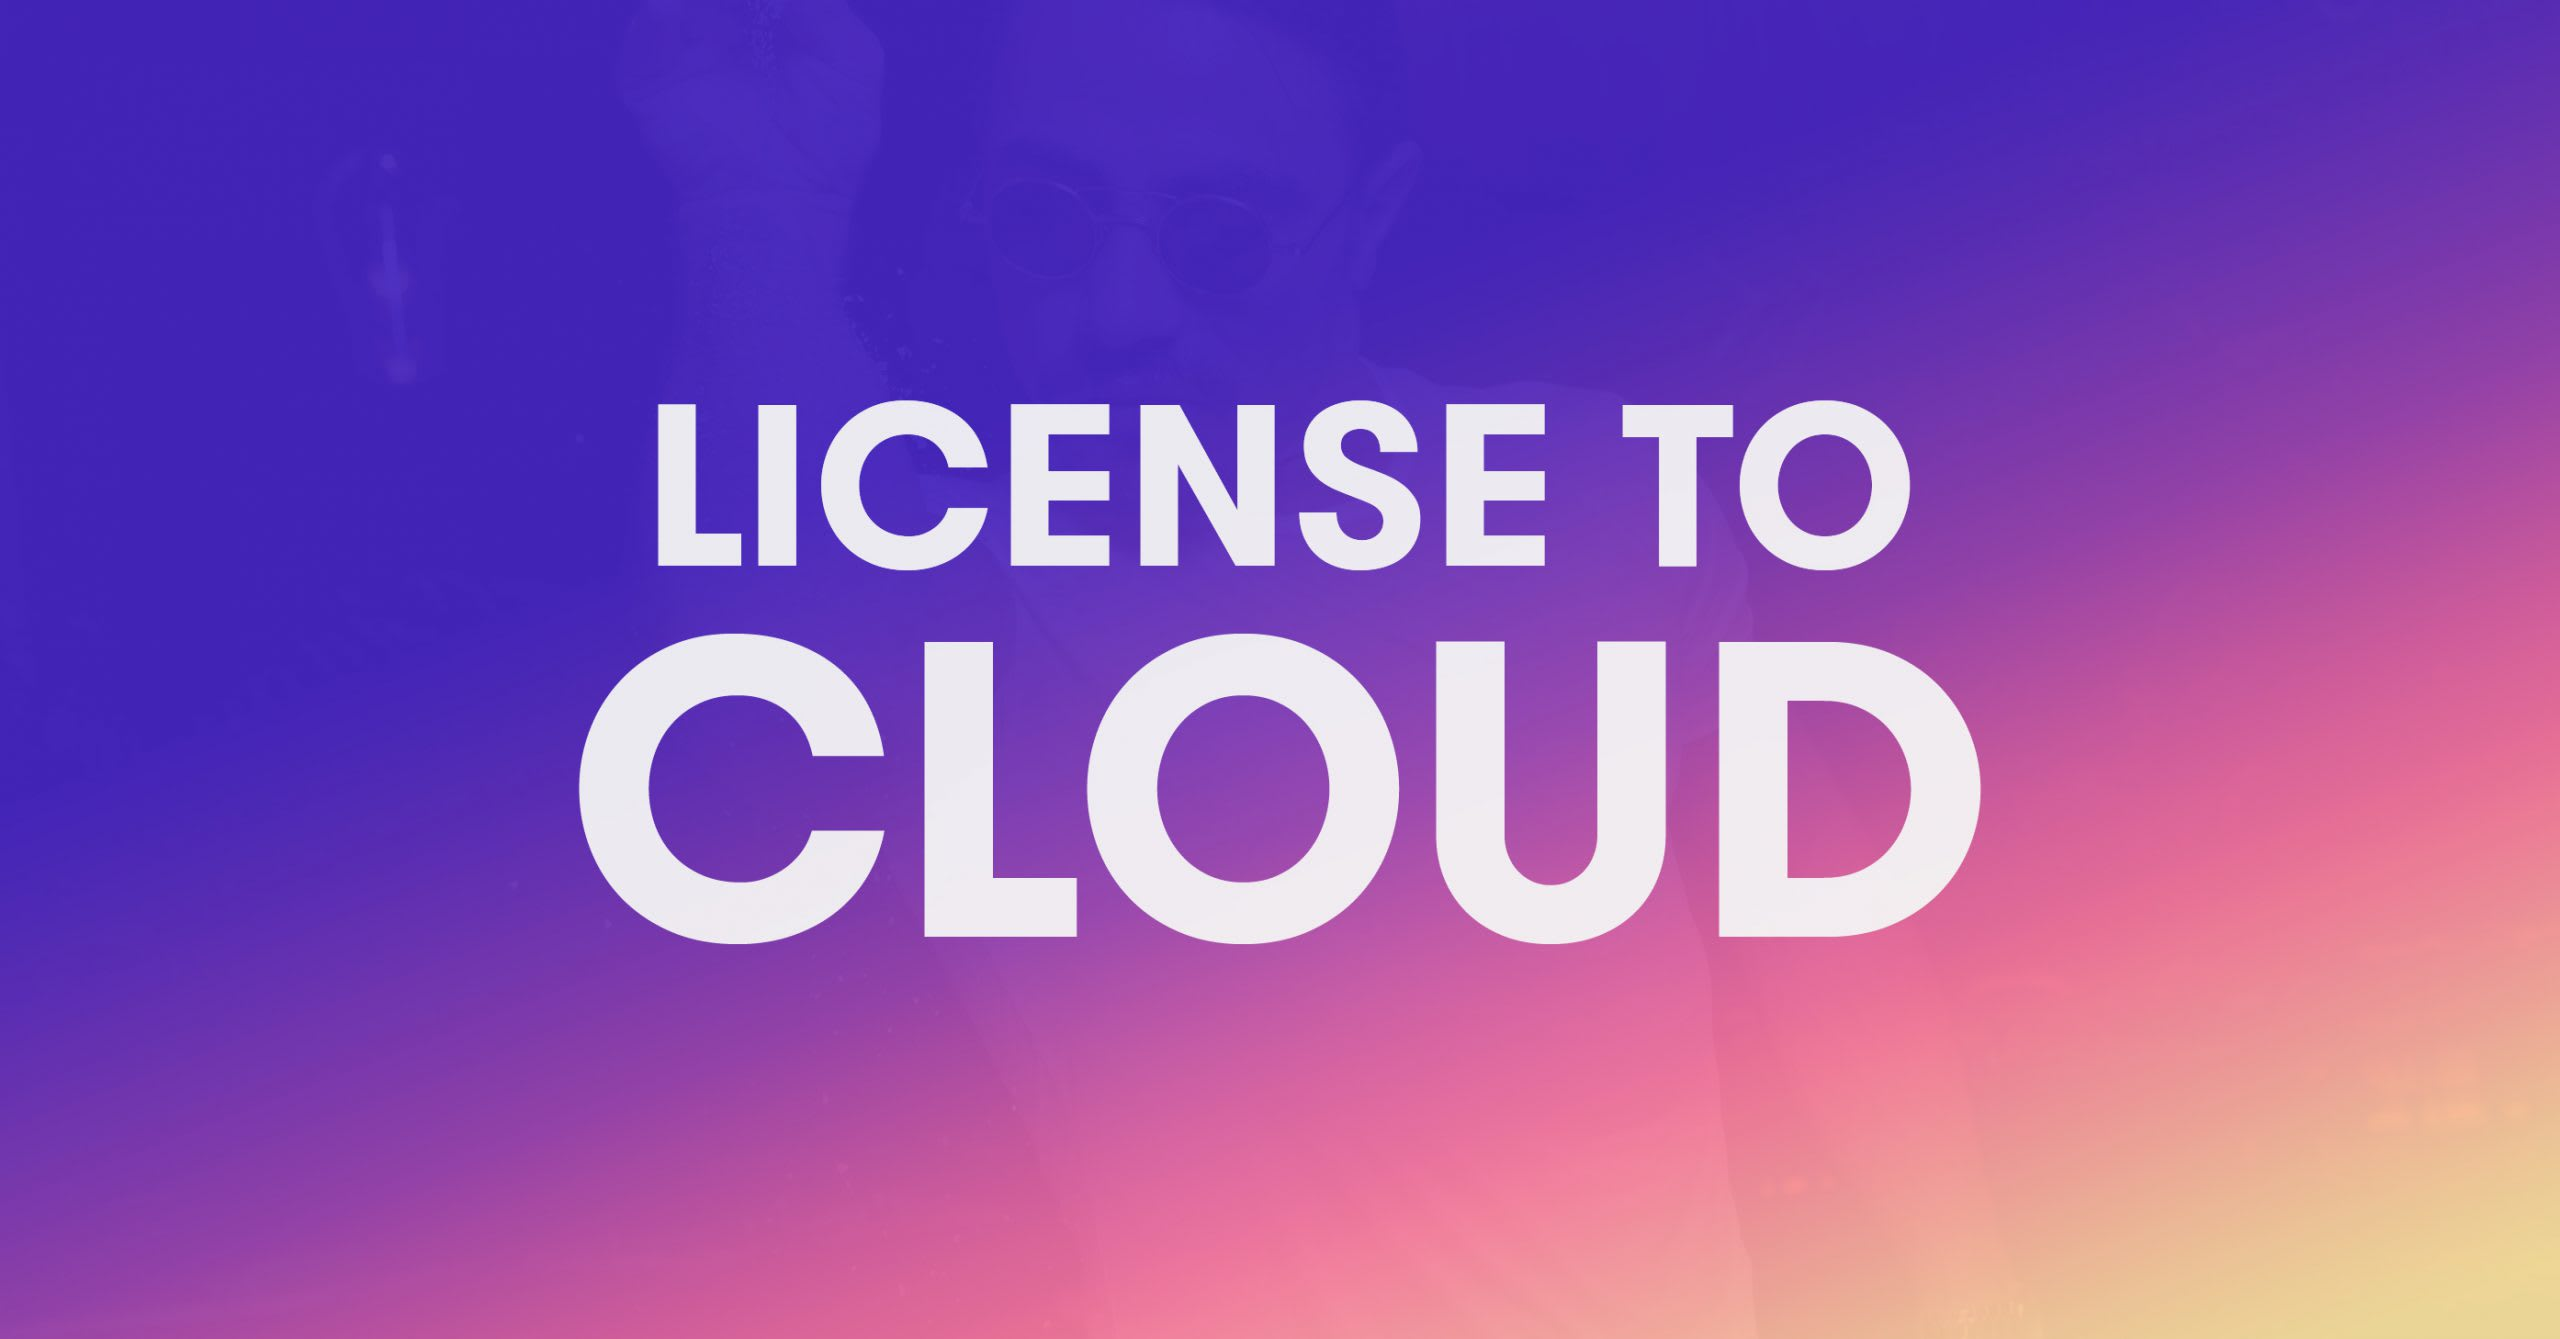 license to cloud